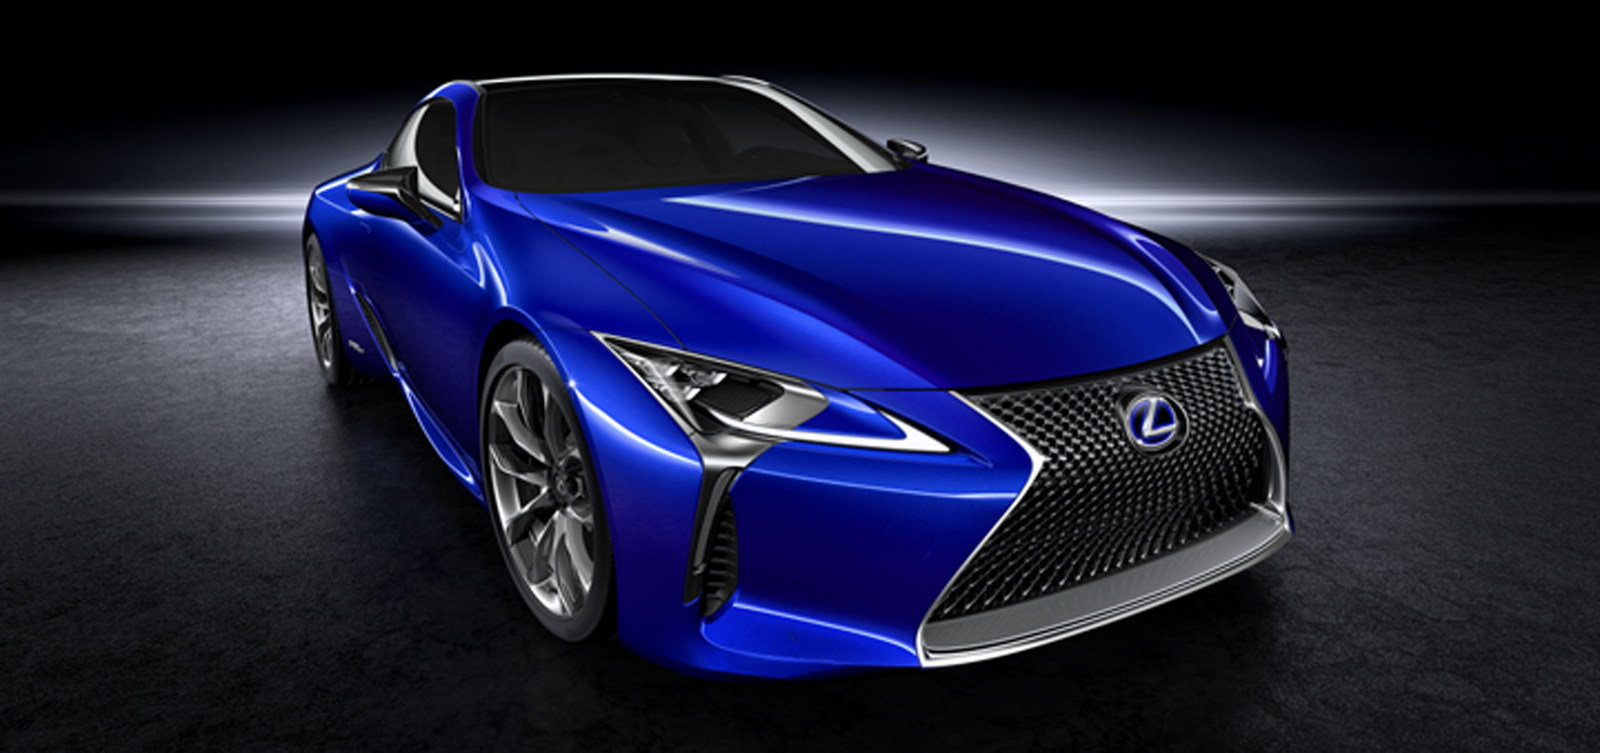 2017 lexus lc 500h picture 666386 car review top speed. Black Bedroom Furniture Sets. Home Design Ideas